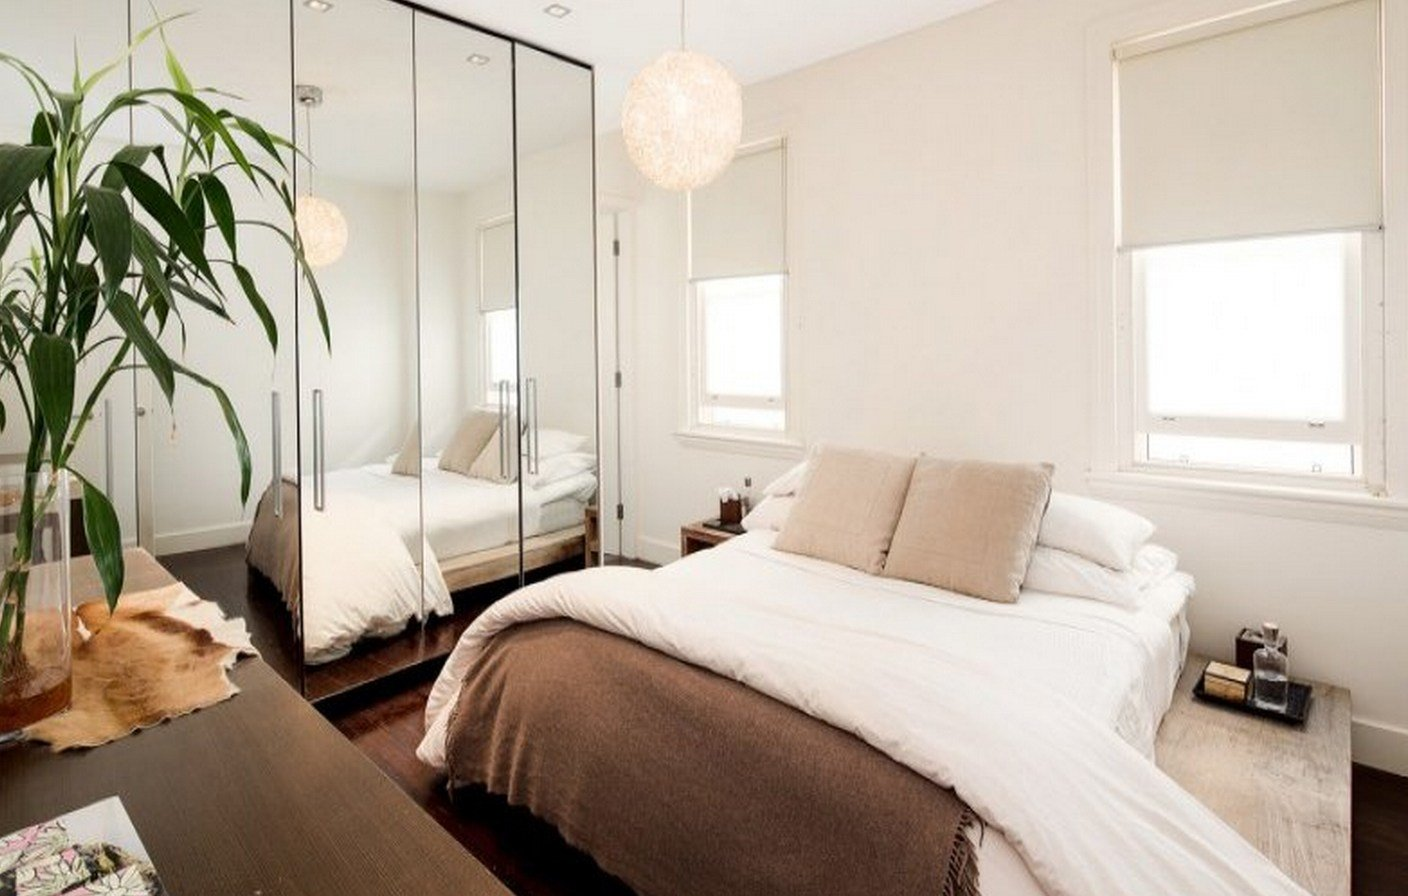 Best 7 Ways To Make A Small Bedroom Look Bigger Realestate Com Au With Pictures